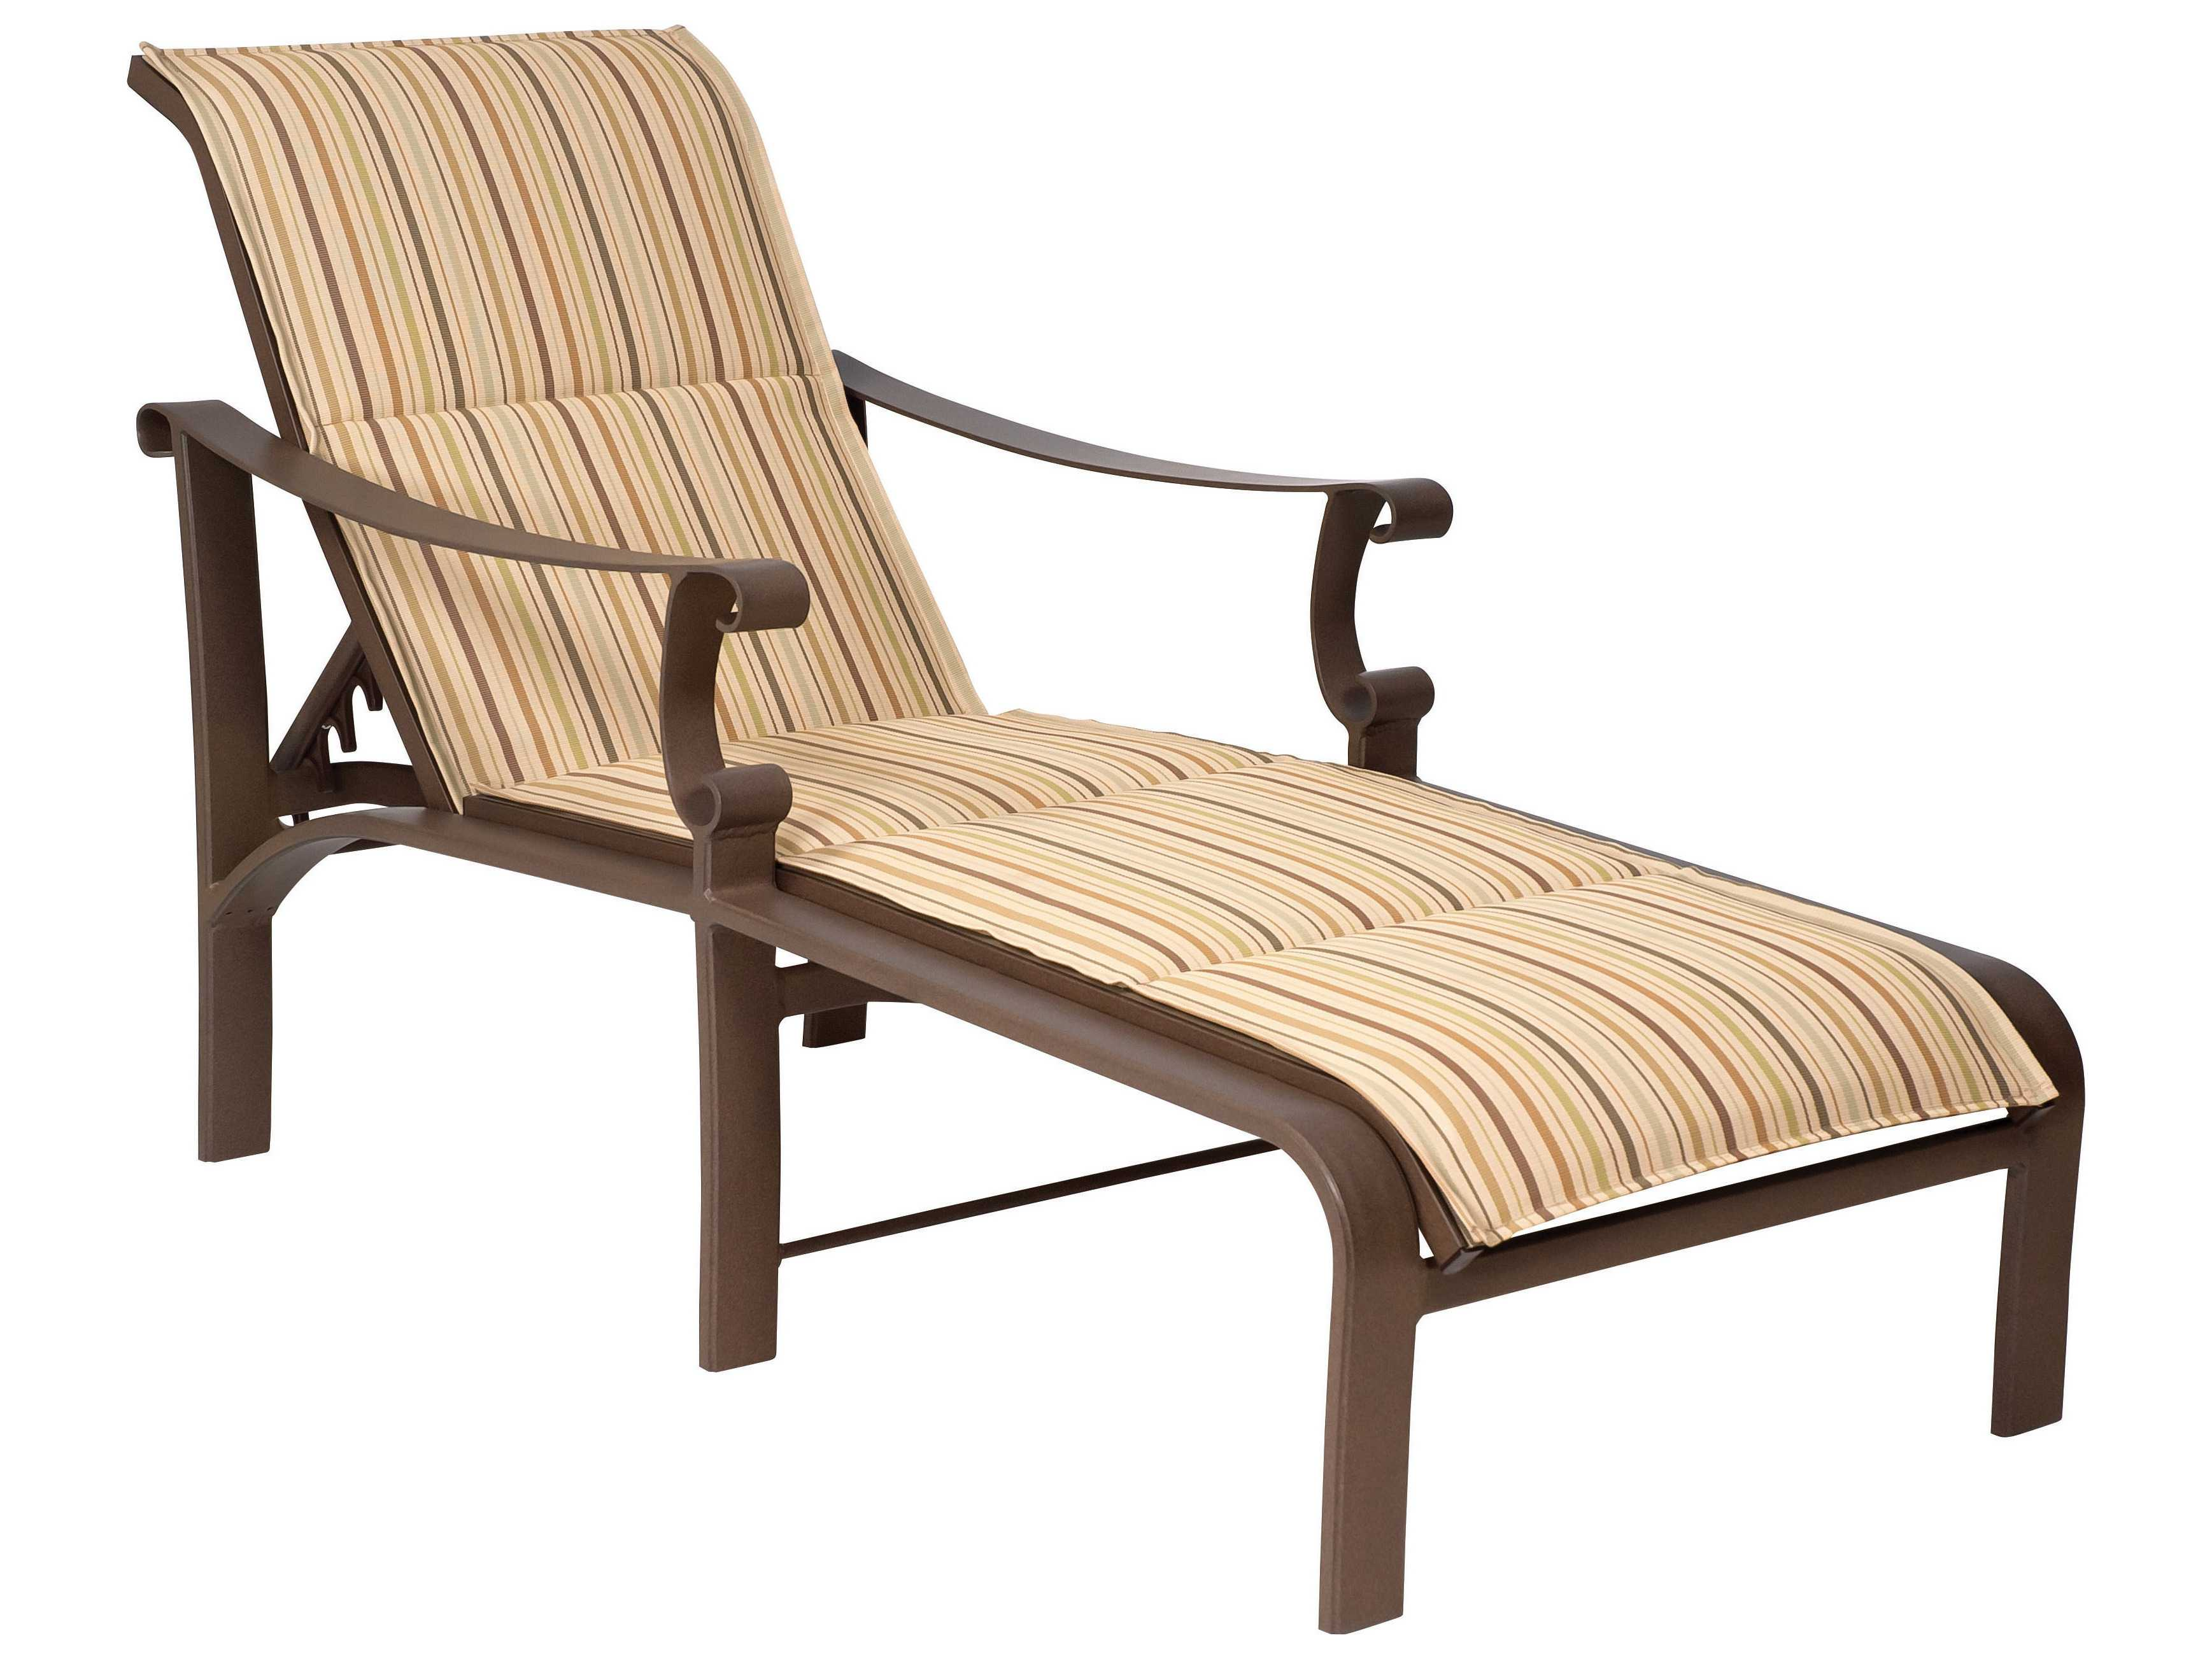 Woodard bungalow padded sling aluminum adjustable chaise for Aluminum sling chaise lounge